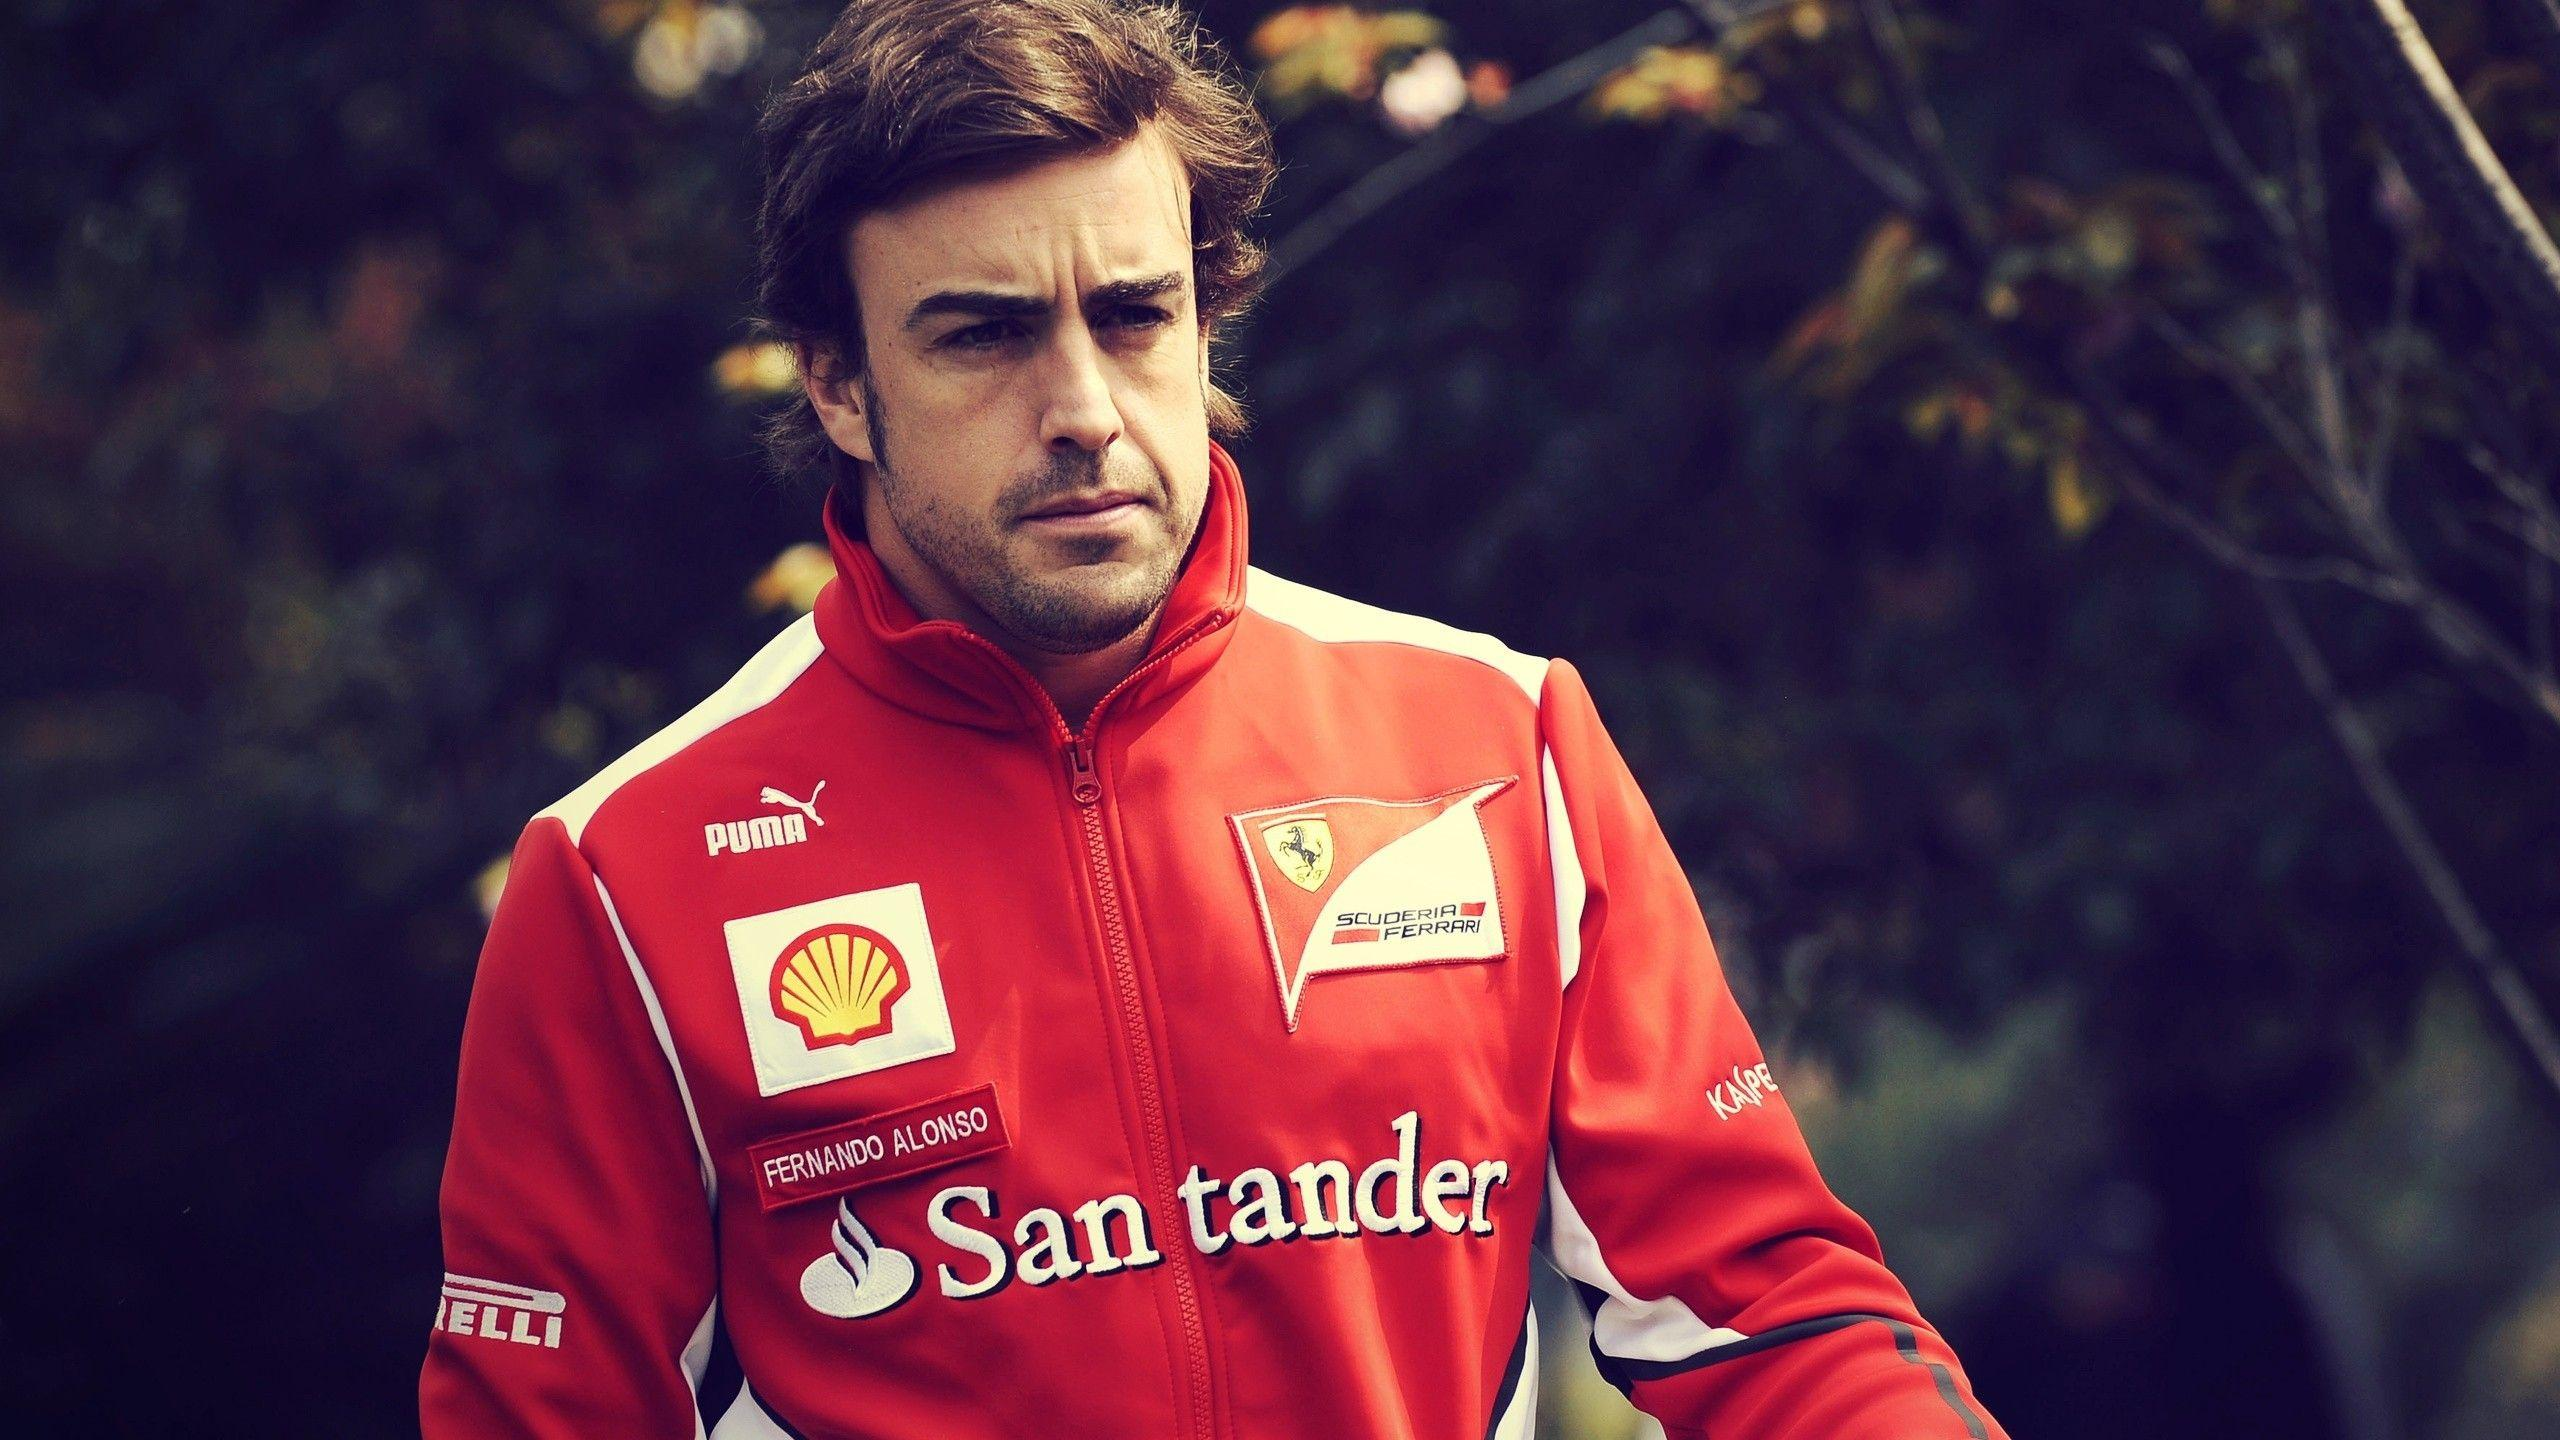 Ferrari formula one fernando alonso wallpaper | AllWallpaper.in ...